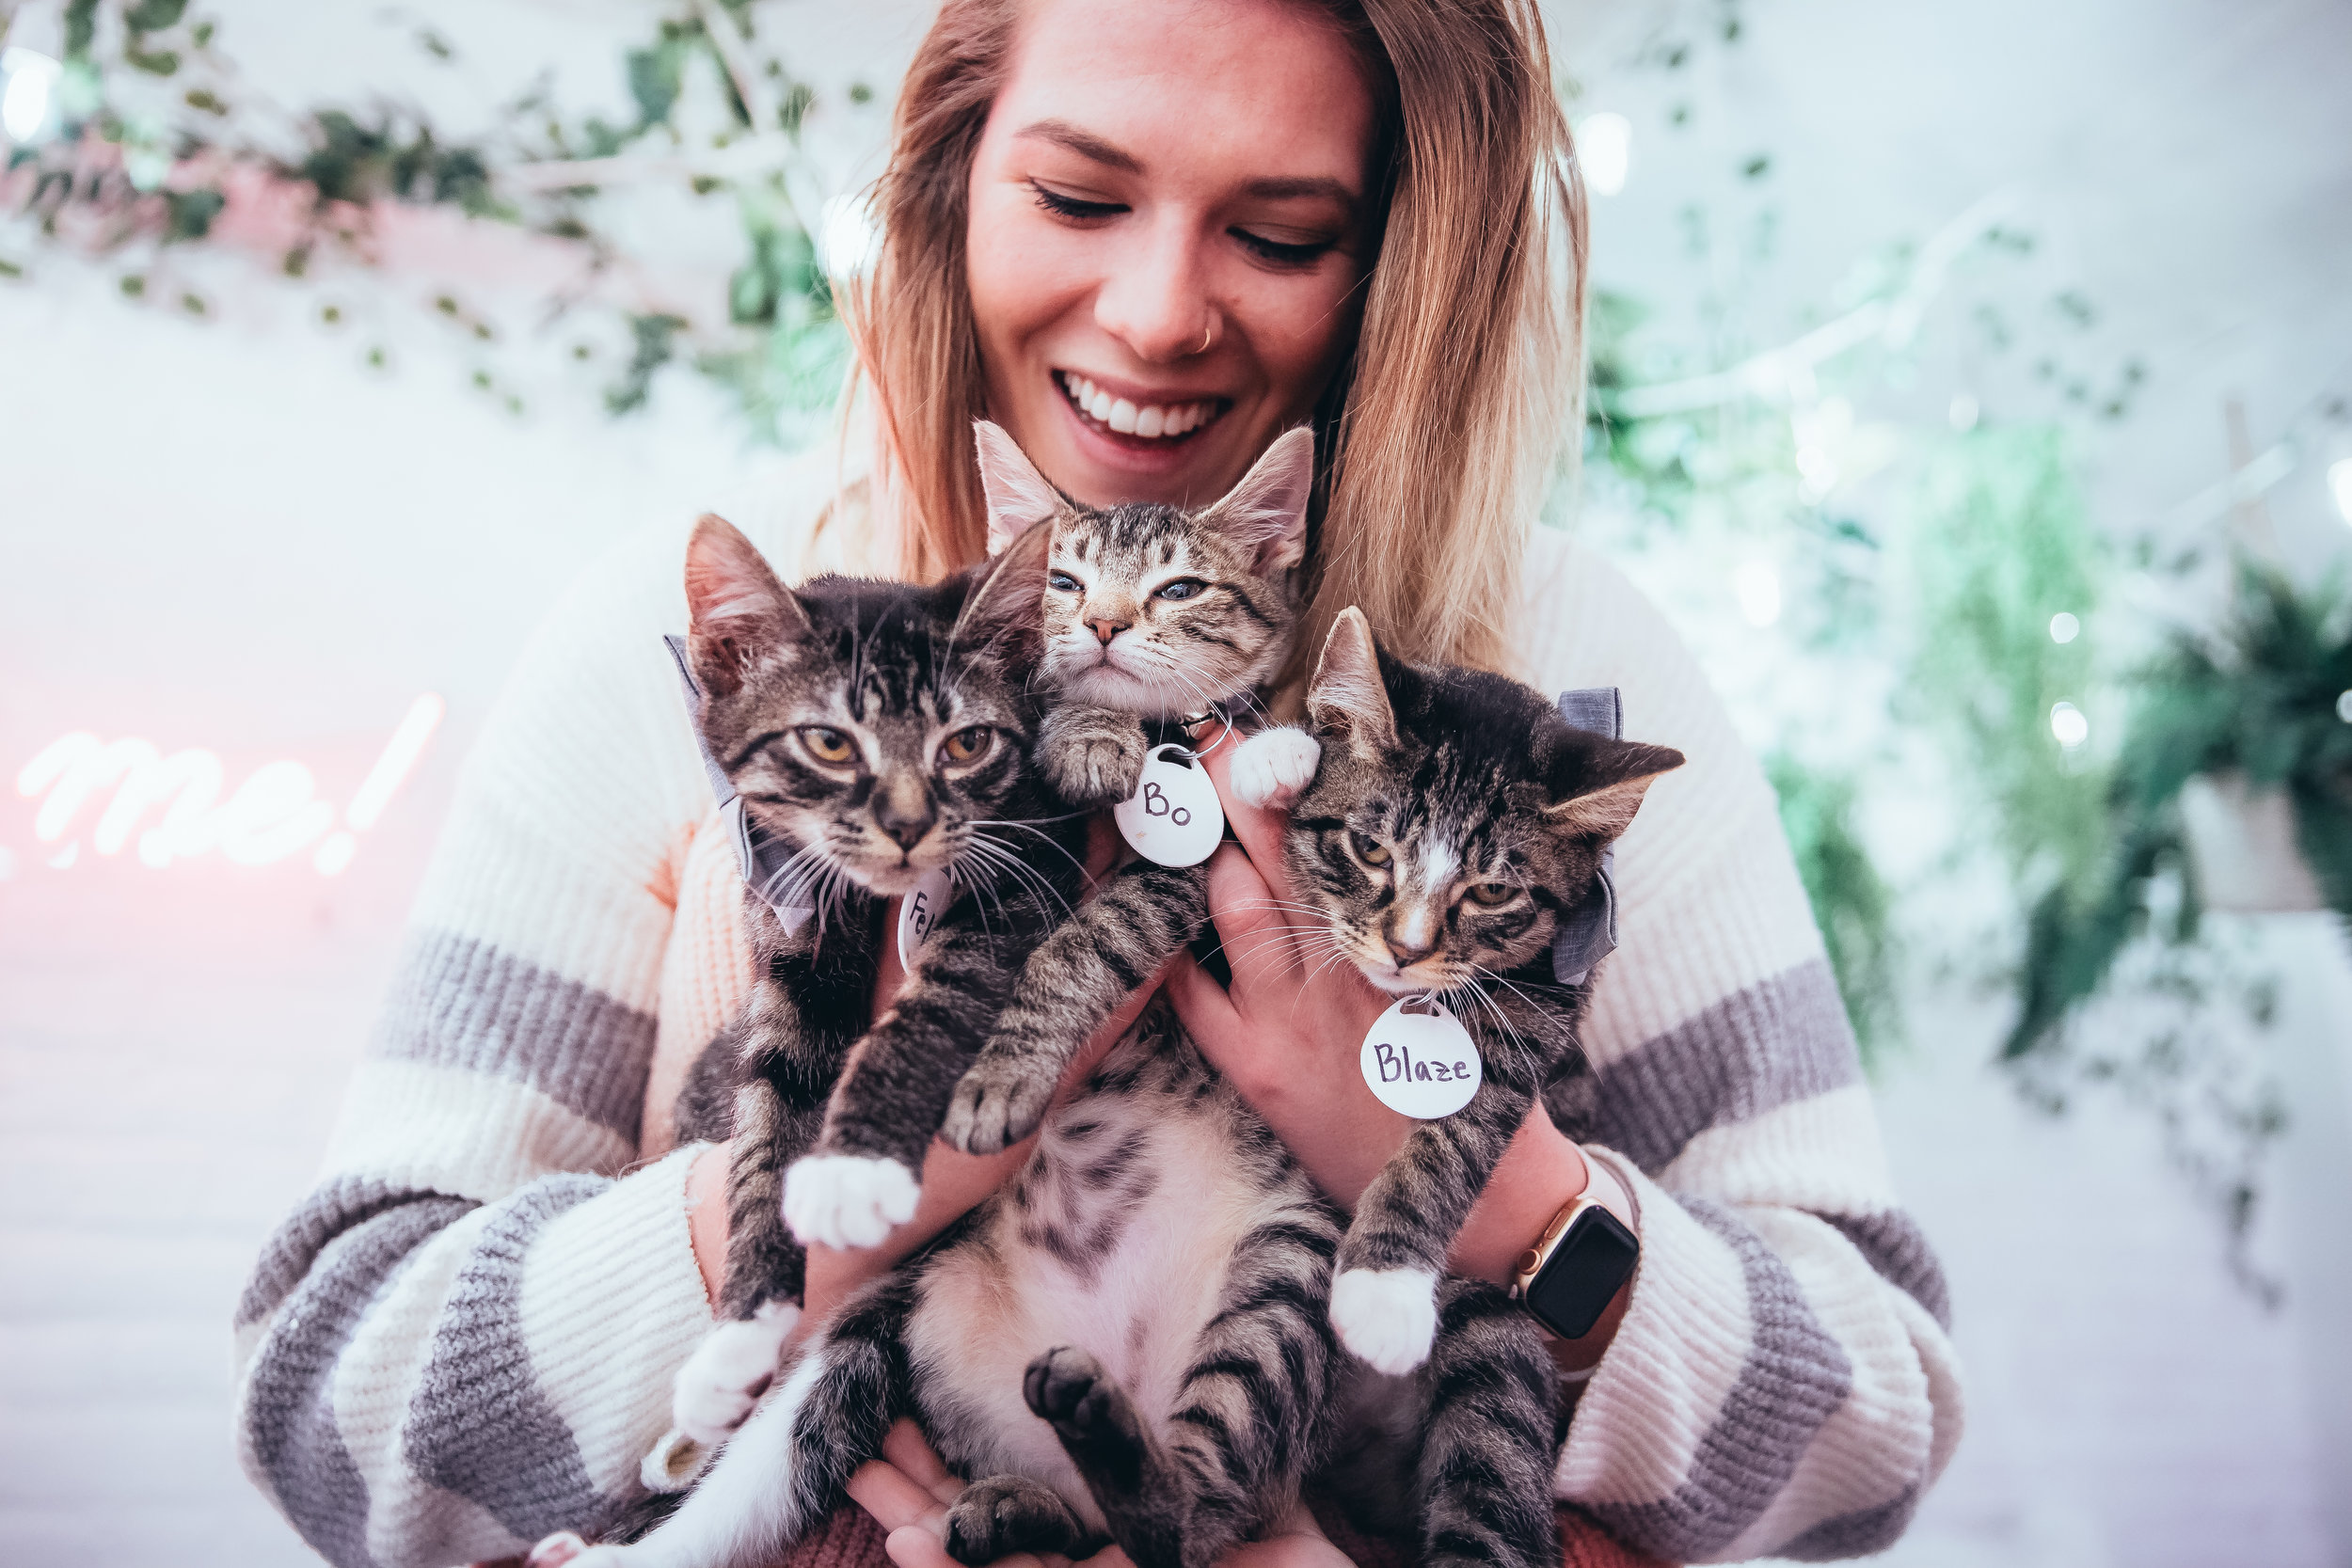 So, what is The Kitten Cafe? - The Kitten Cafe is a place filled with adorable rescue kittens who are looking for their forever homes. You can play with them, cuddle with them, nap with them, do a photoshoot with them, and if you fall in love...adopt them!